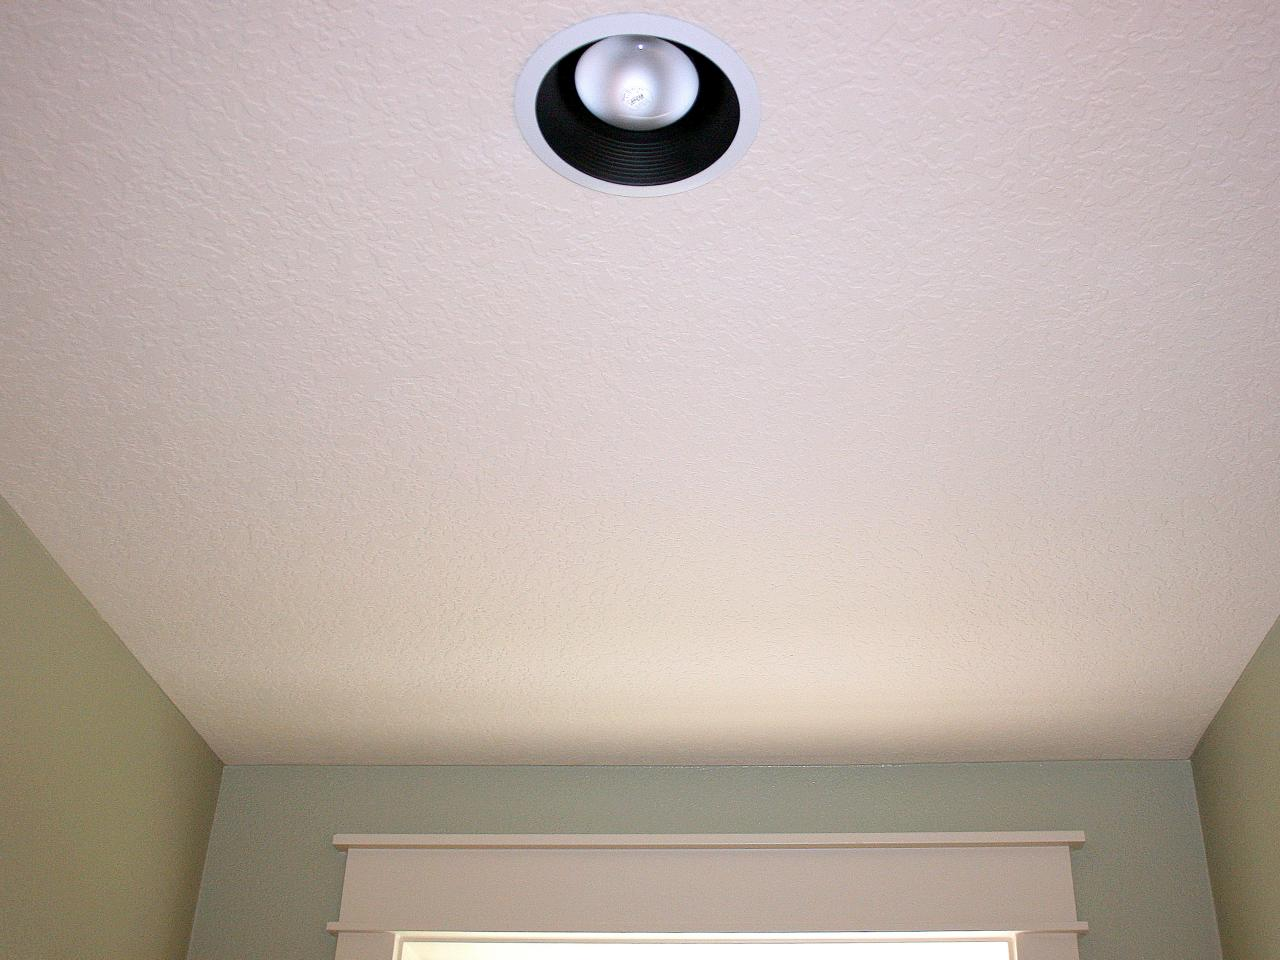 Replace recessed light with a pendant fixture hgtv choose recessed light to convert mozeypictures